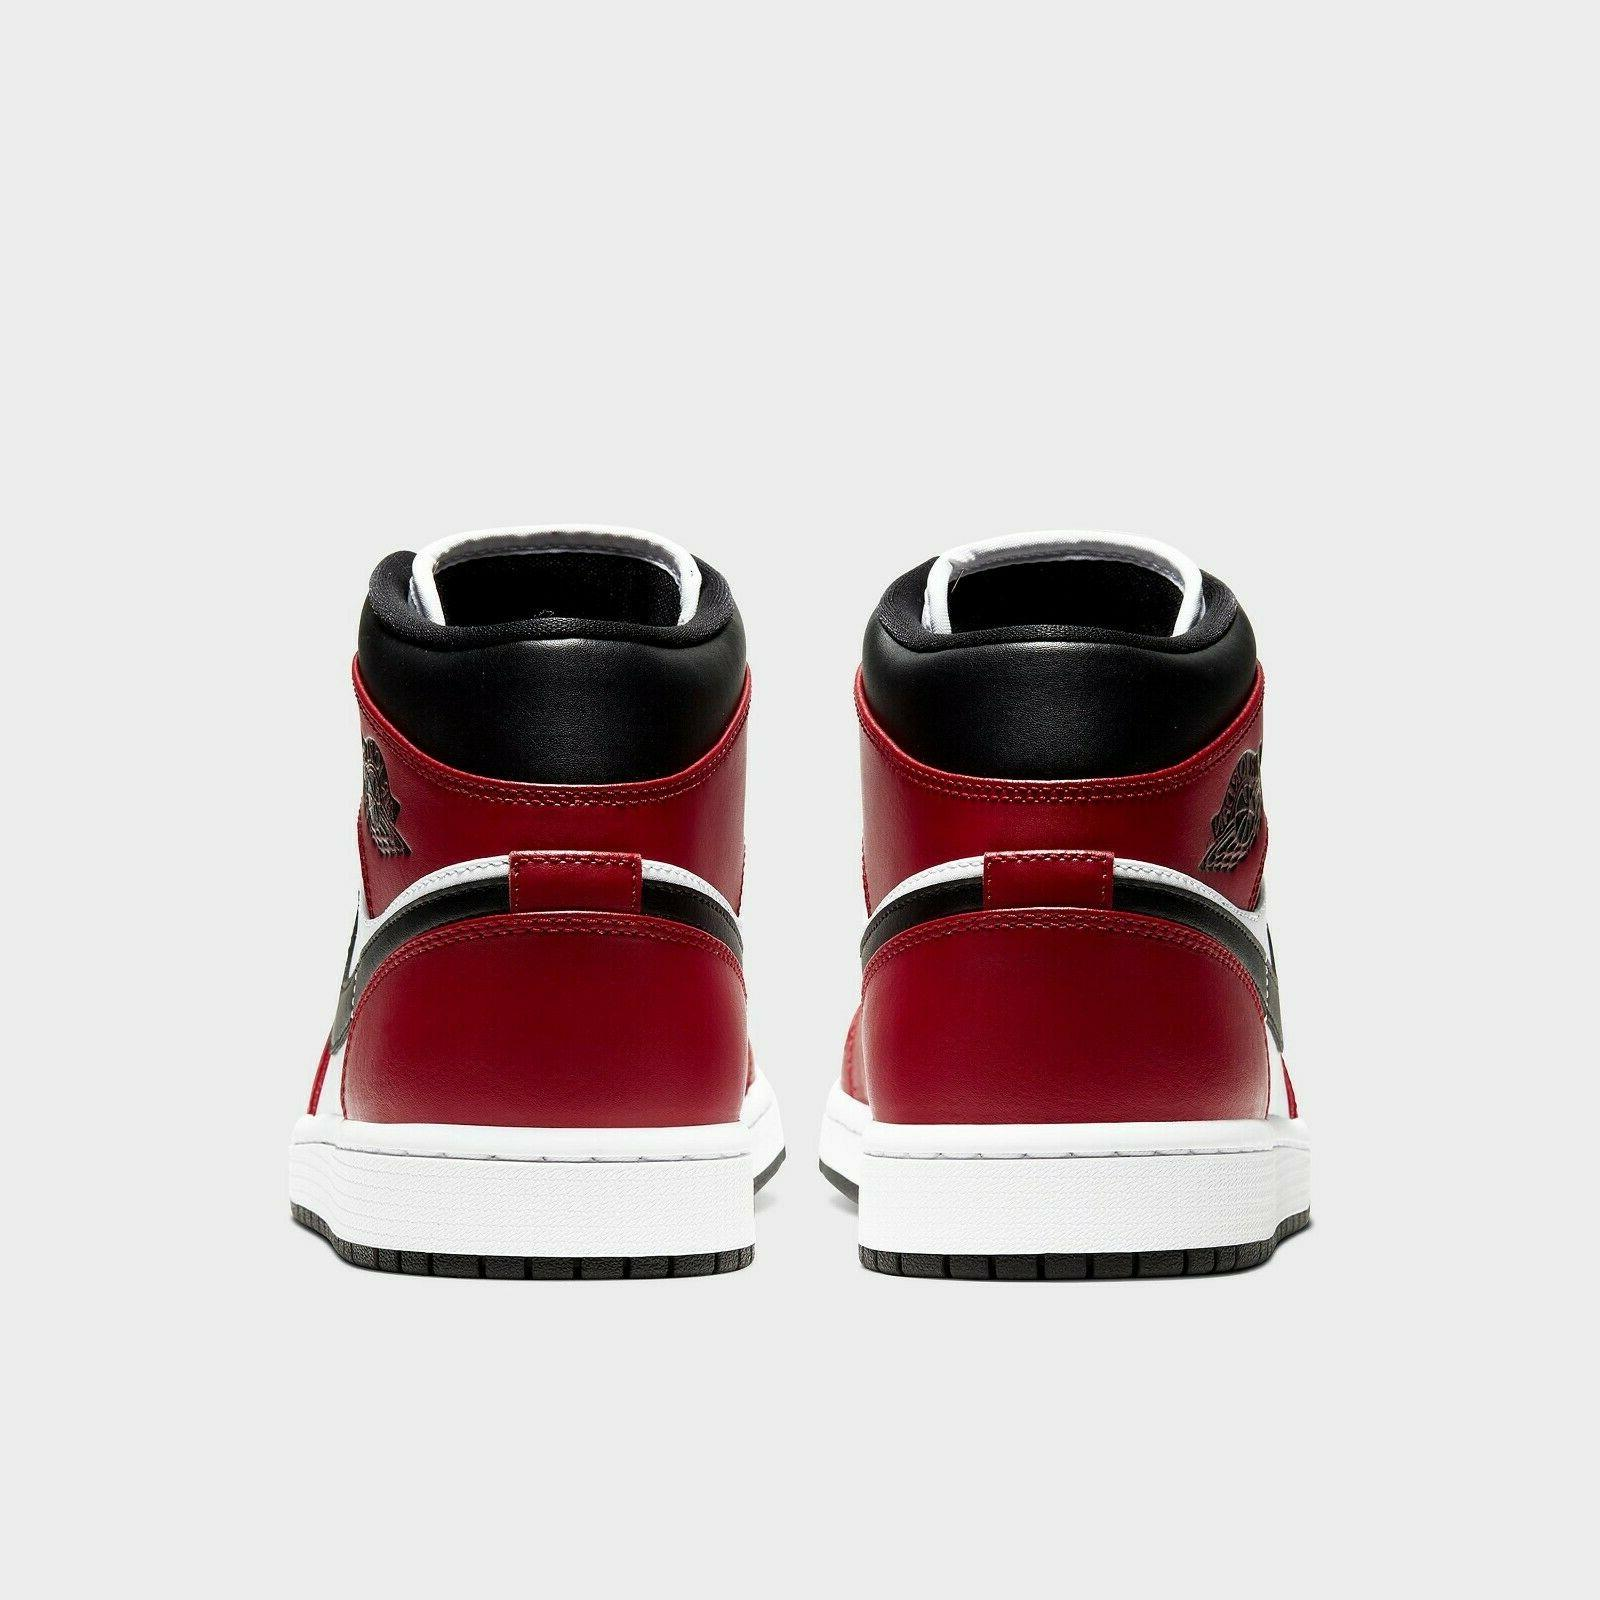 Air Black Toe Bred Retro Red White 554724-069